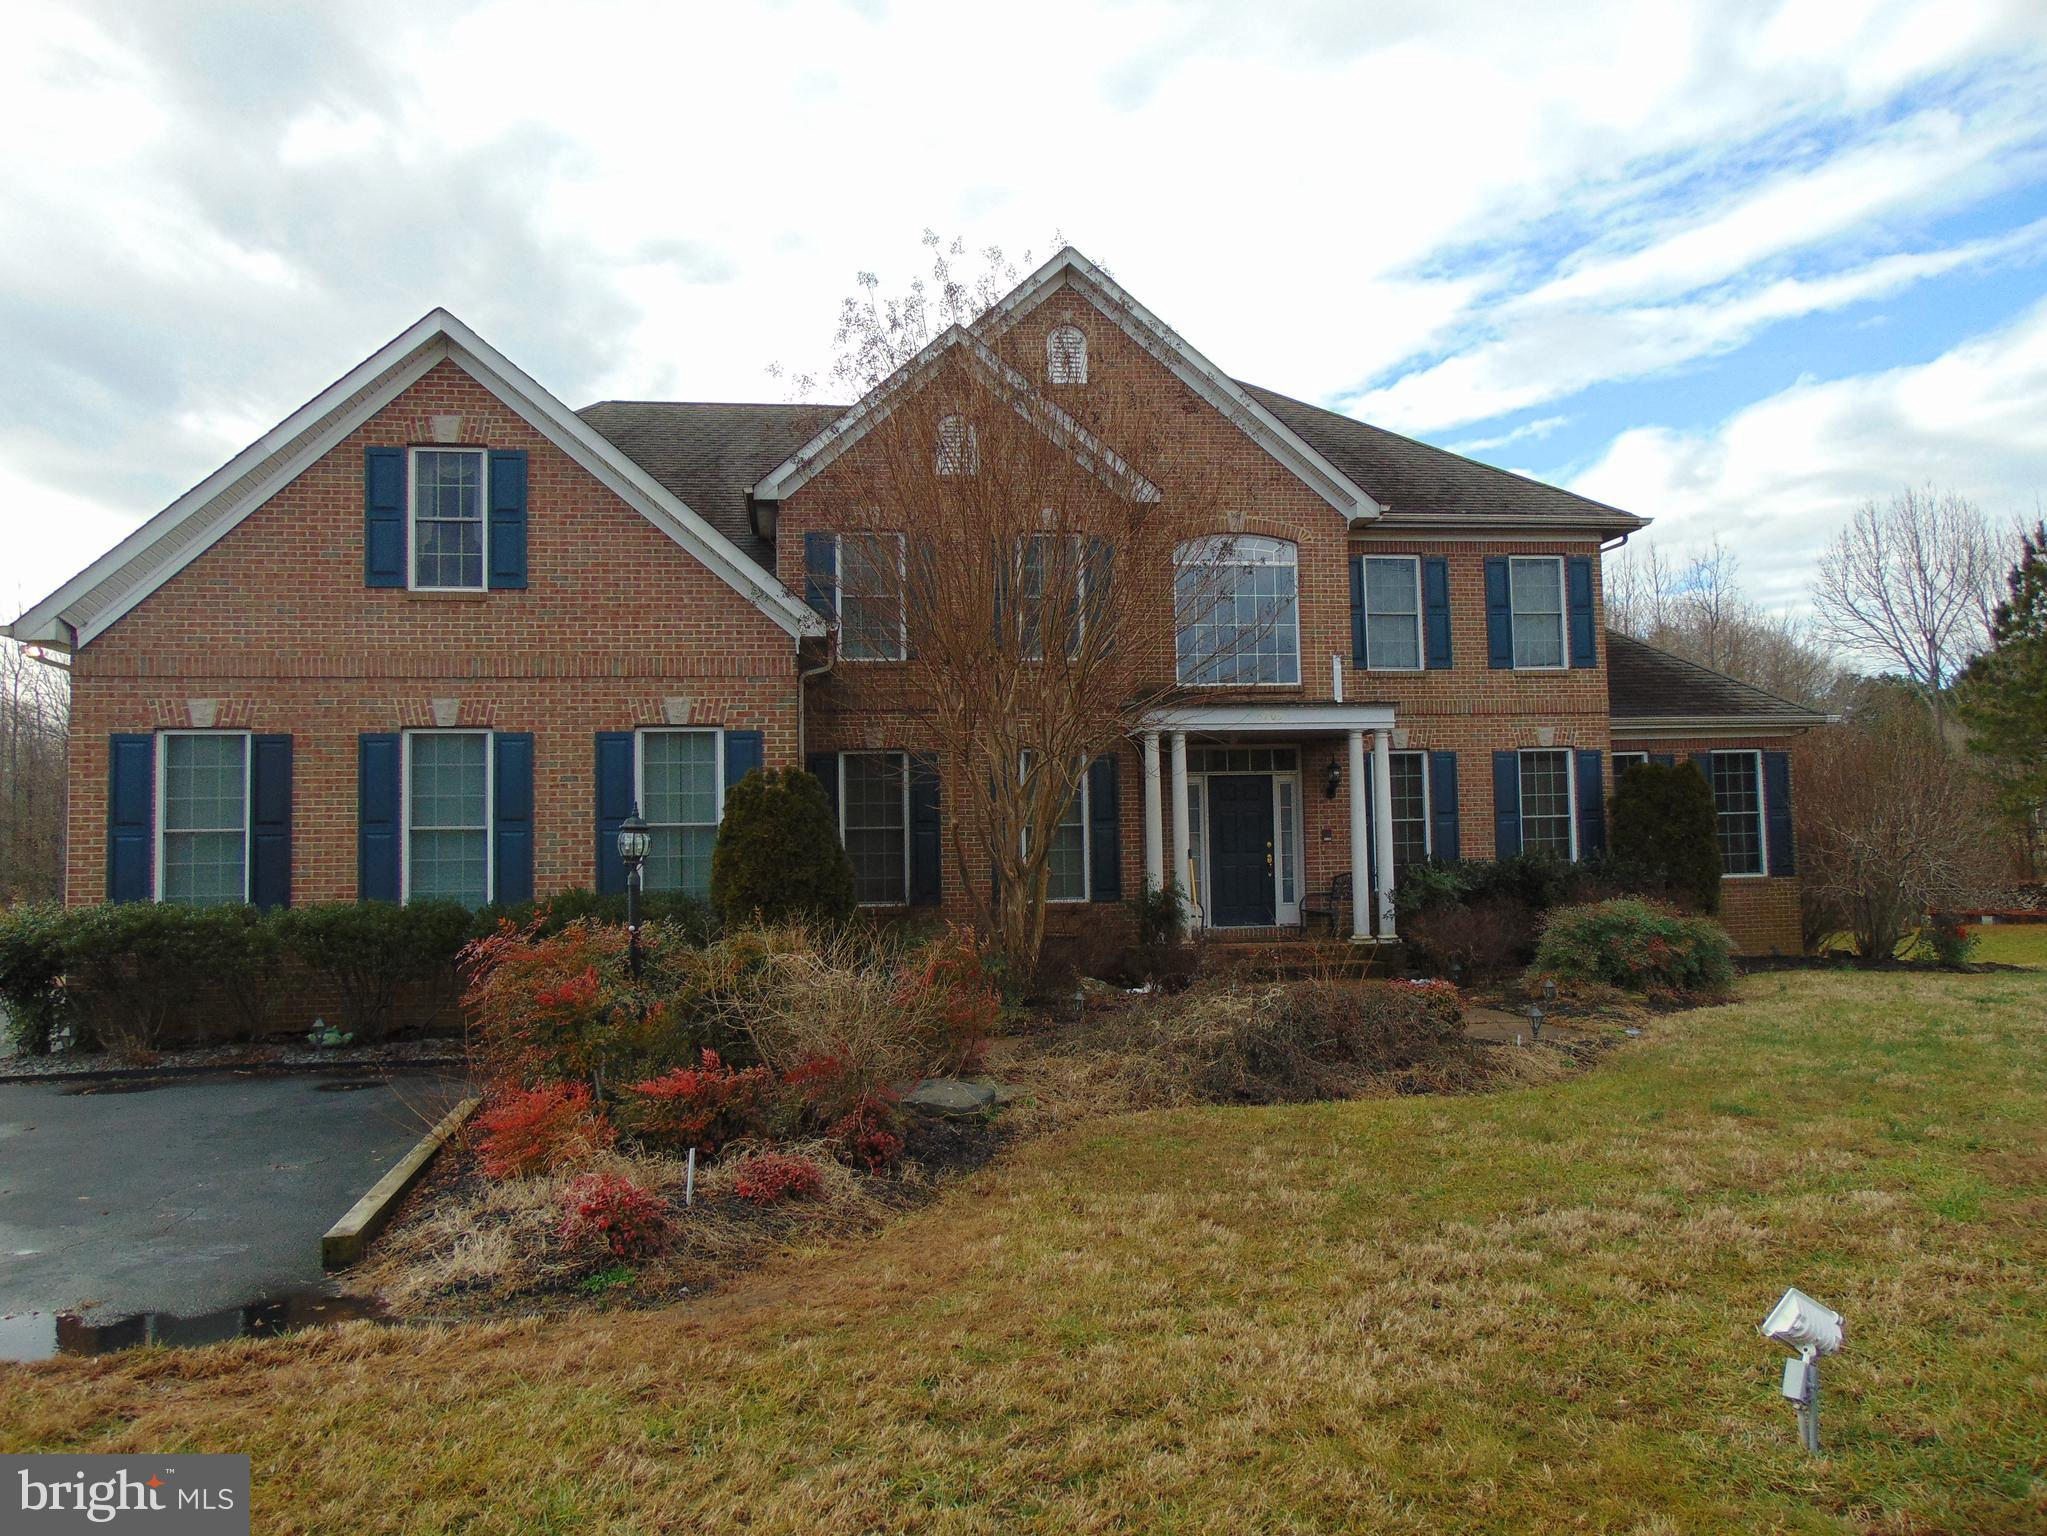 6705 PALE MORNING COURT, HUGHESVILLE, MD 20637